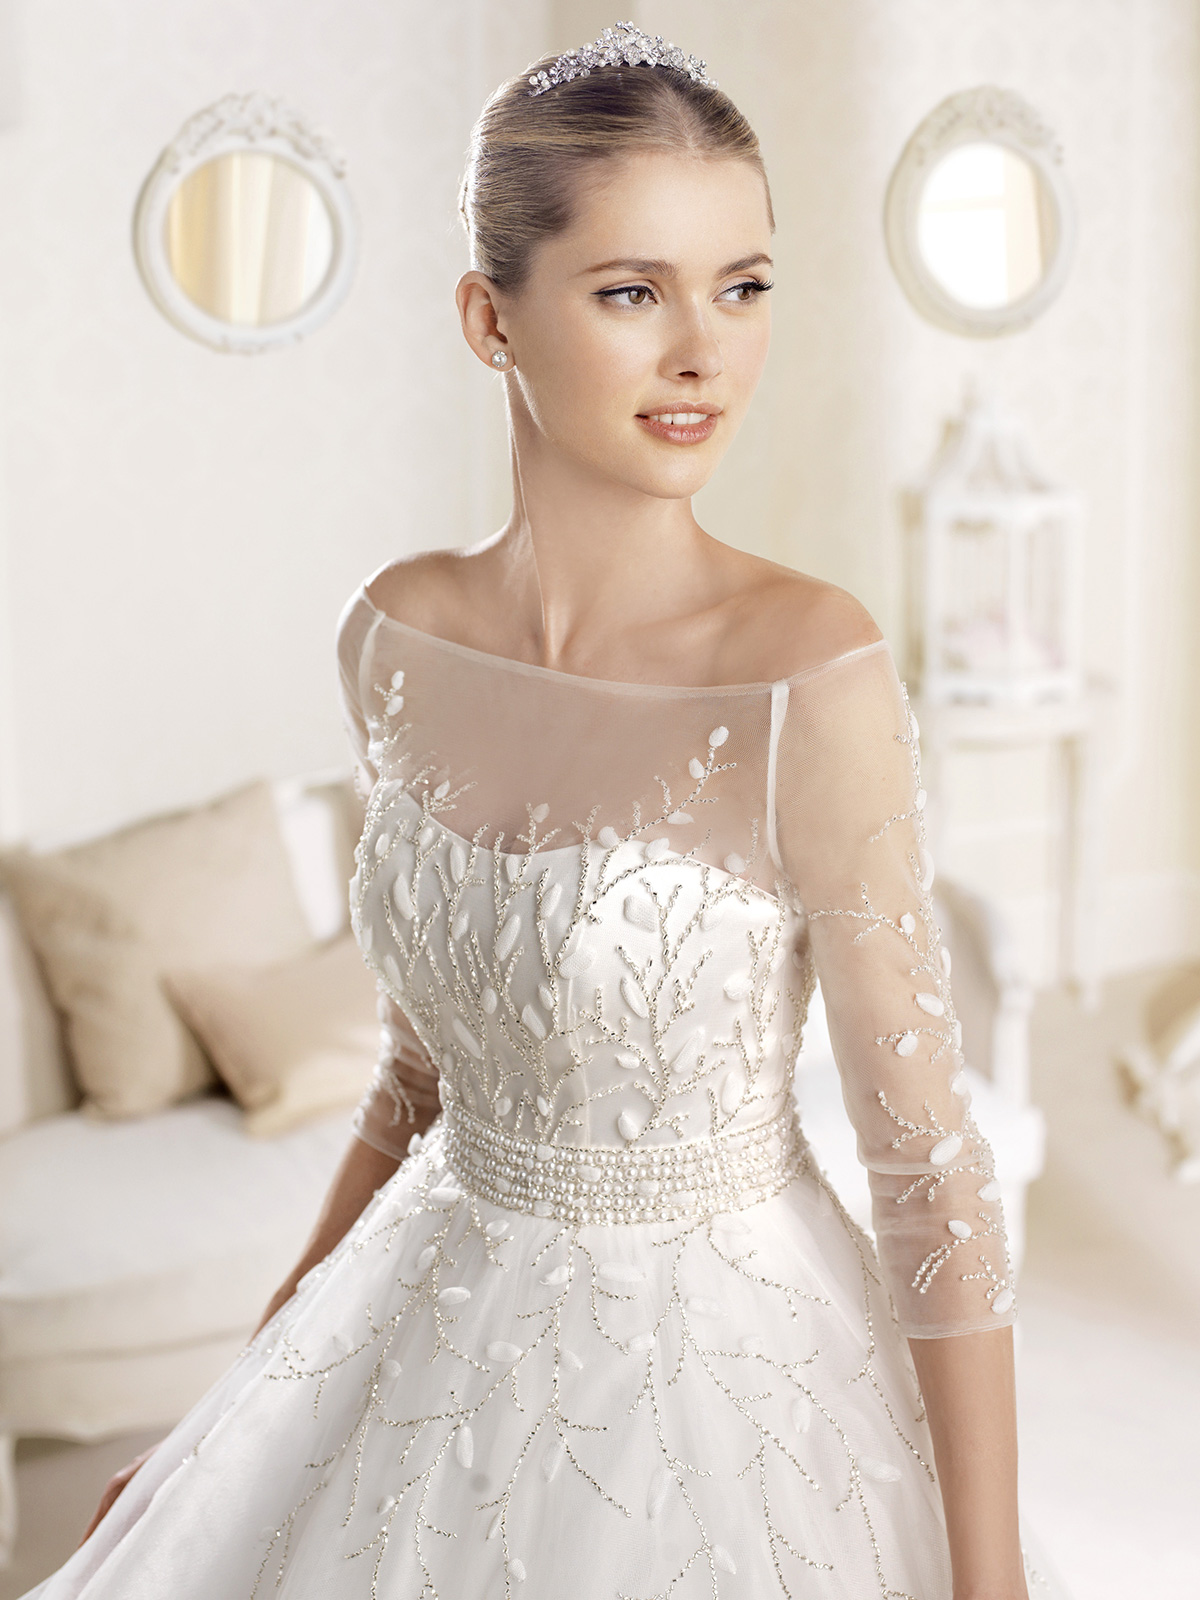 wedding dresses with three quarter sleeves sleeved wedding dresses Wedding Dresses With Three Quarter Sleeves 83